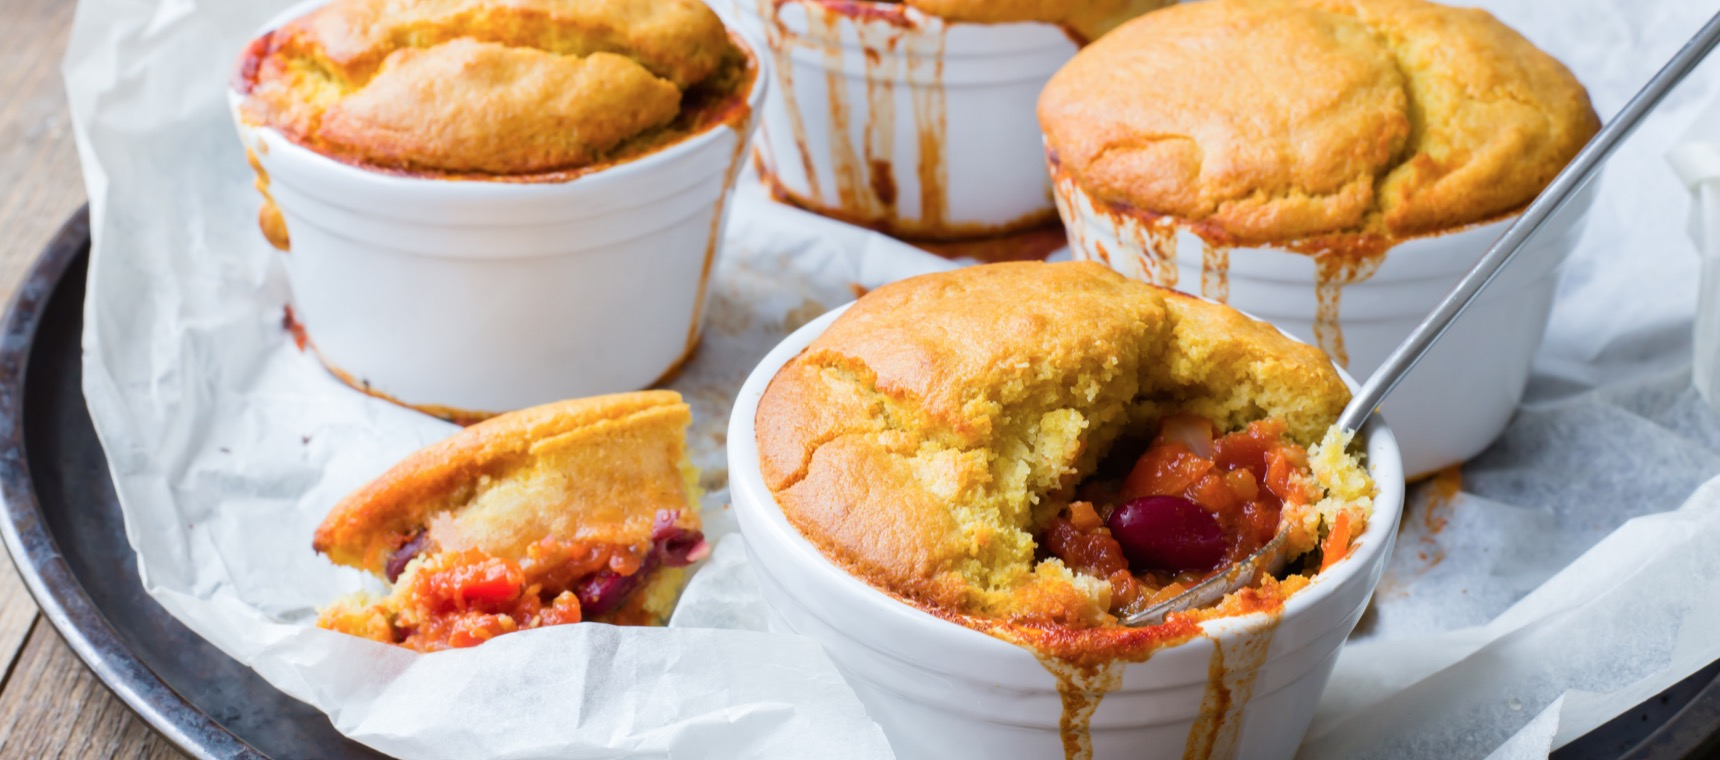 Chilli Pot Pies with a Corn Bread Crust